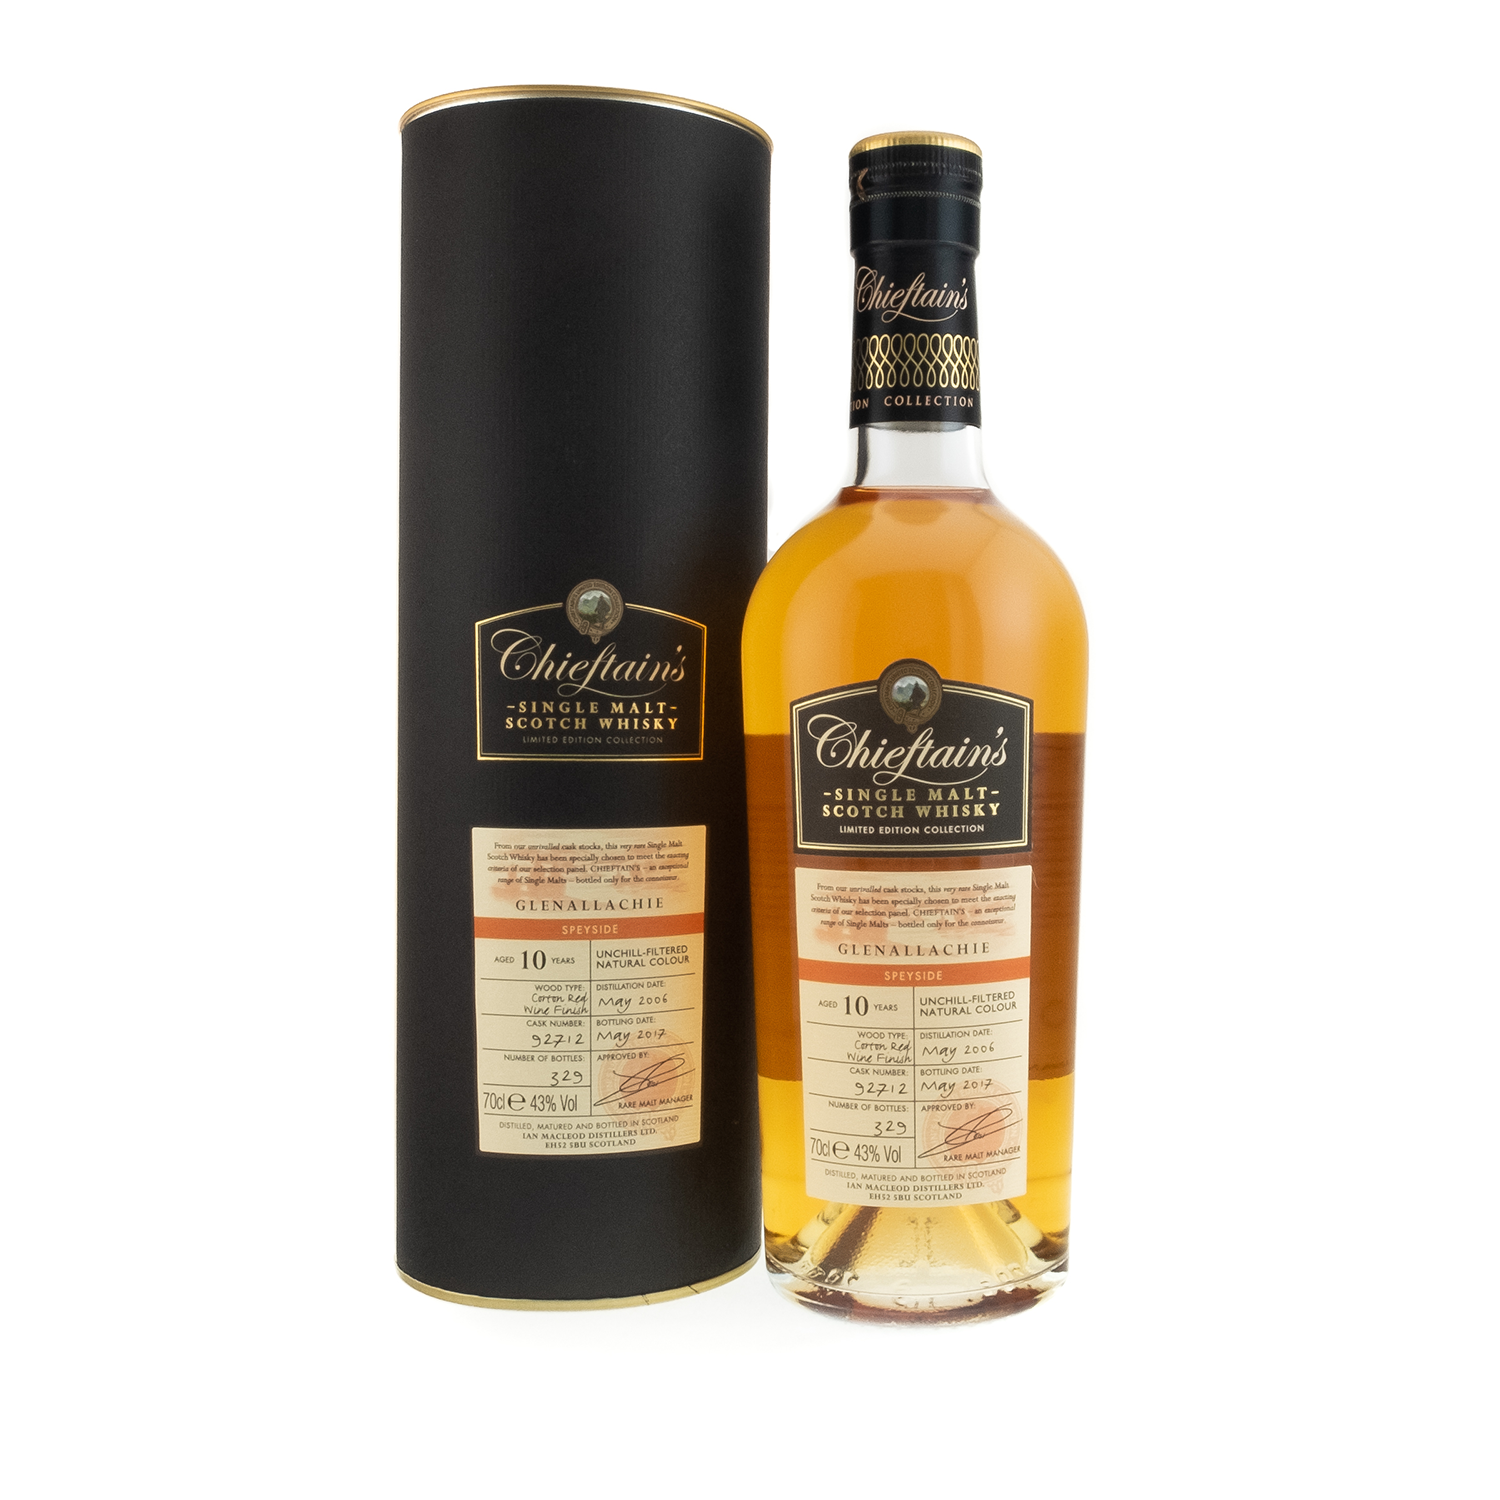 Whisky_Chieftains_Glenallachie_Speyside_10y_001